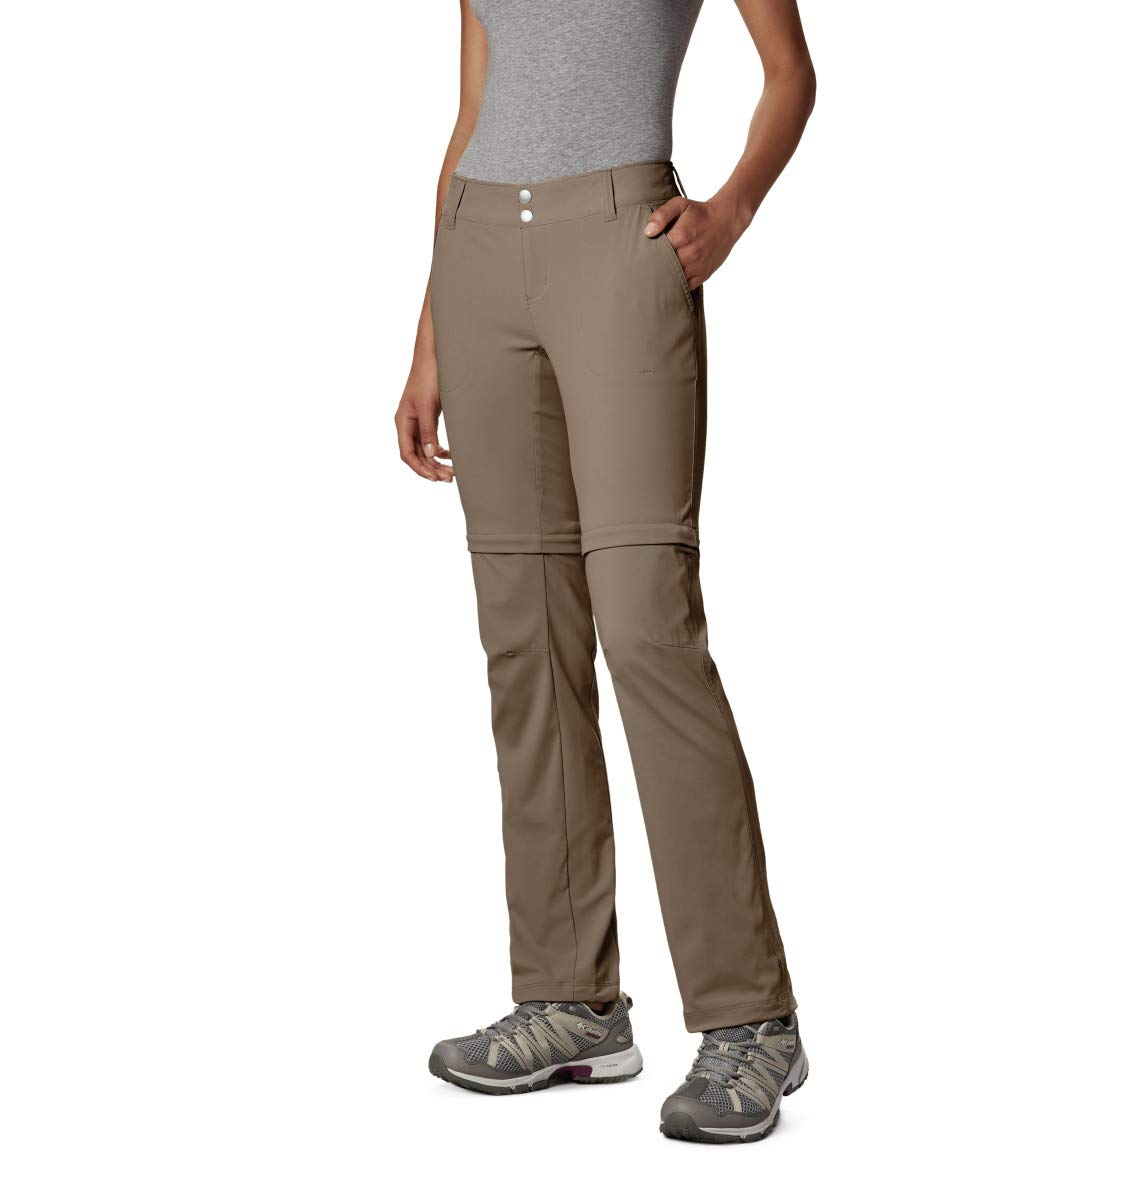 Columbia Women's Saturday Trail II Convertible Pant,Truffle,10 Regular by Columbia